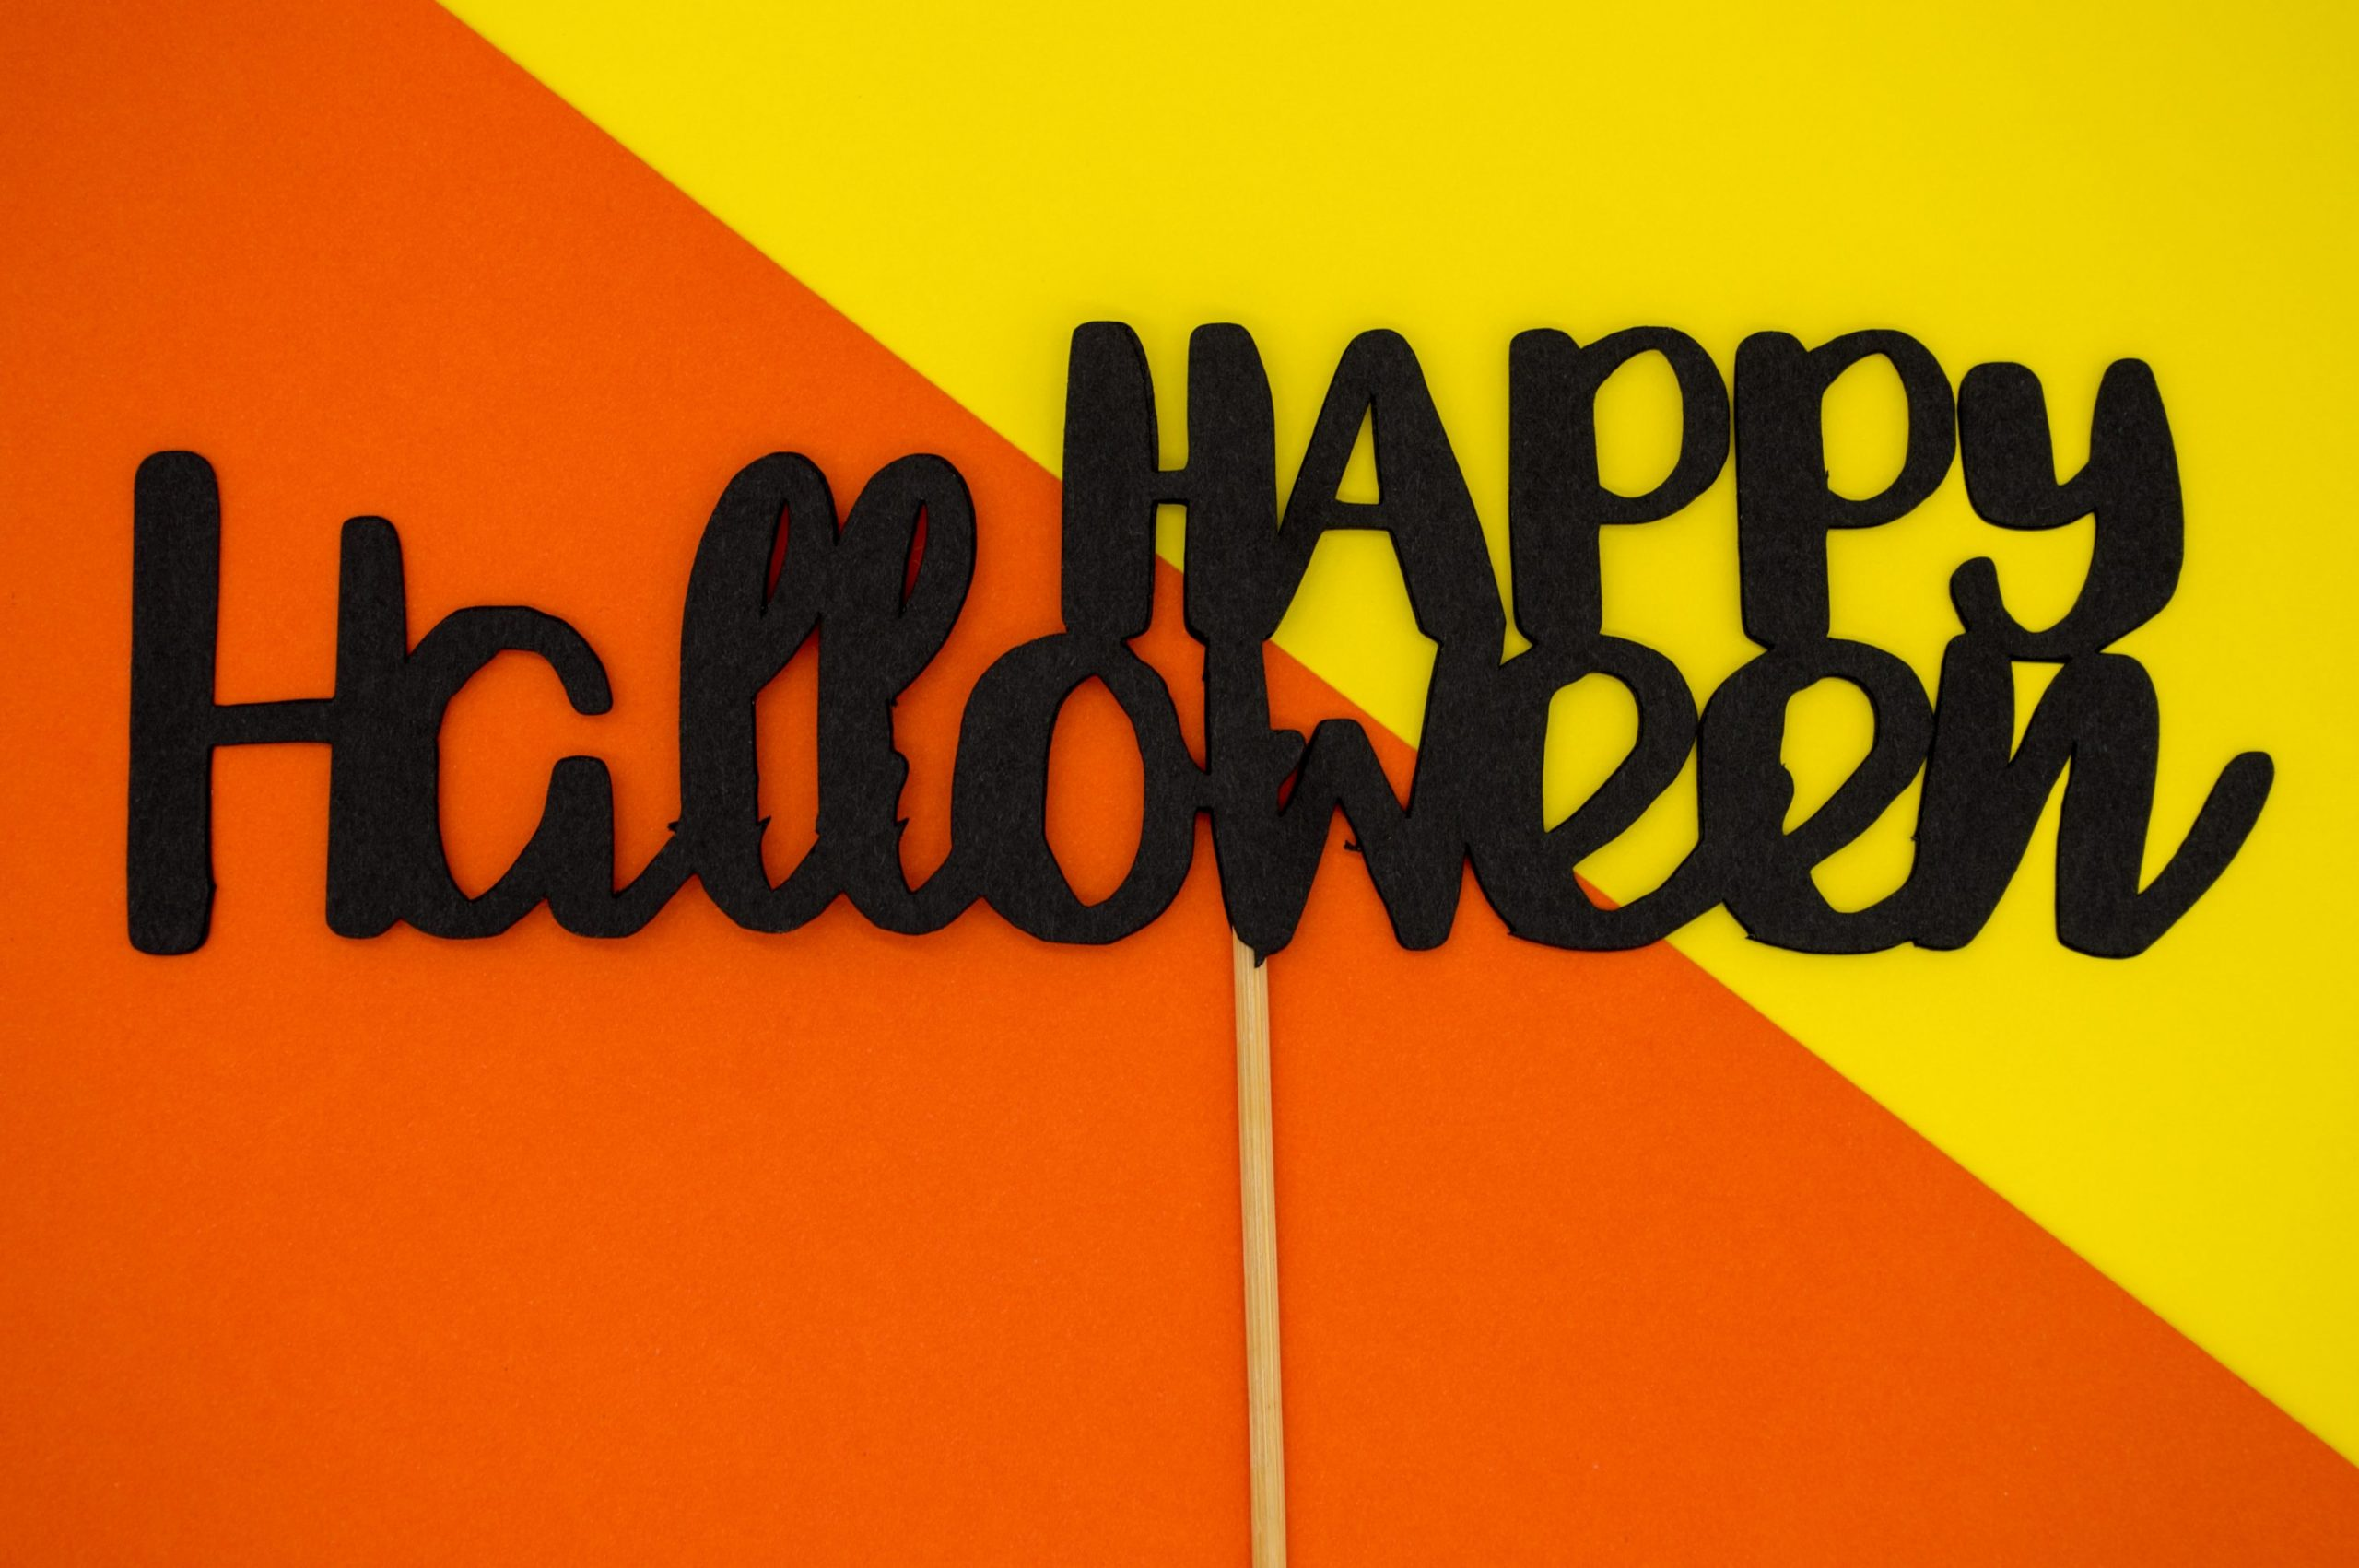 Excellent.org celebrates Halloween and gives tips for content marketing